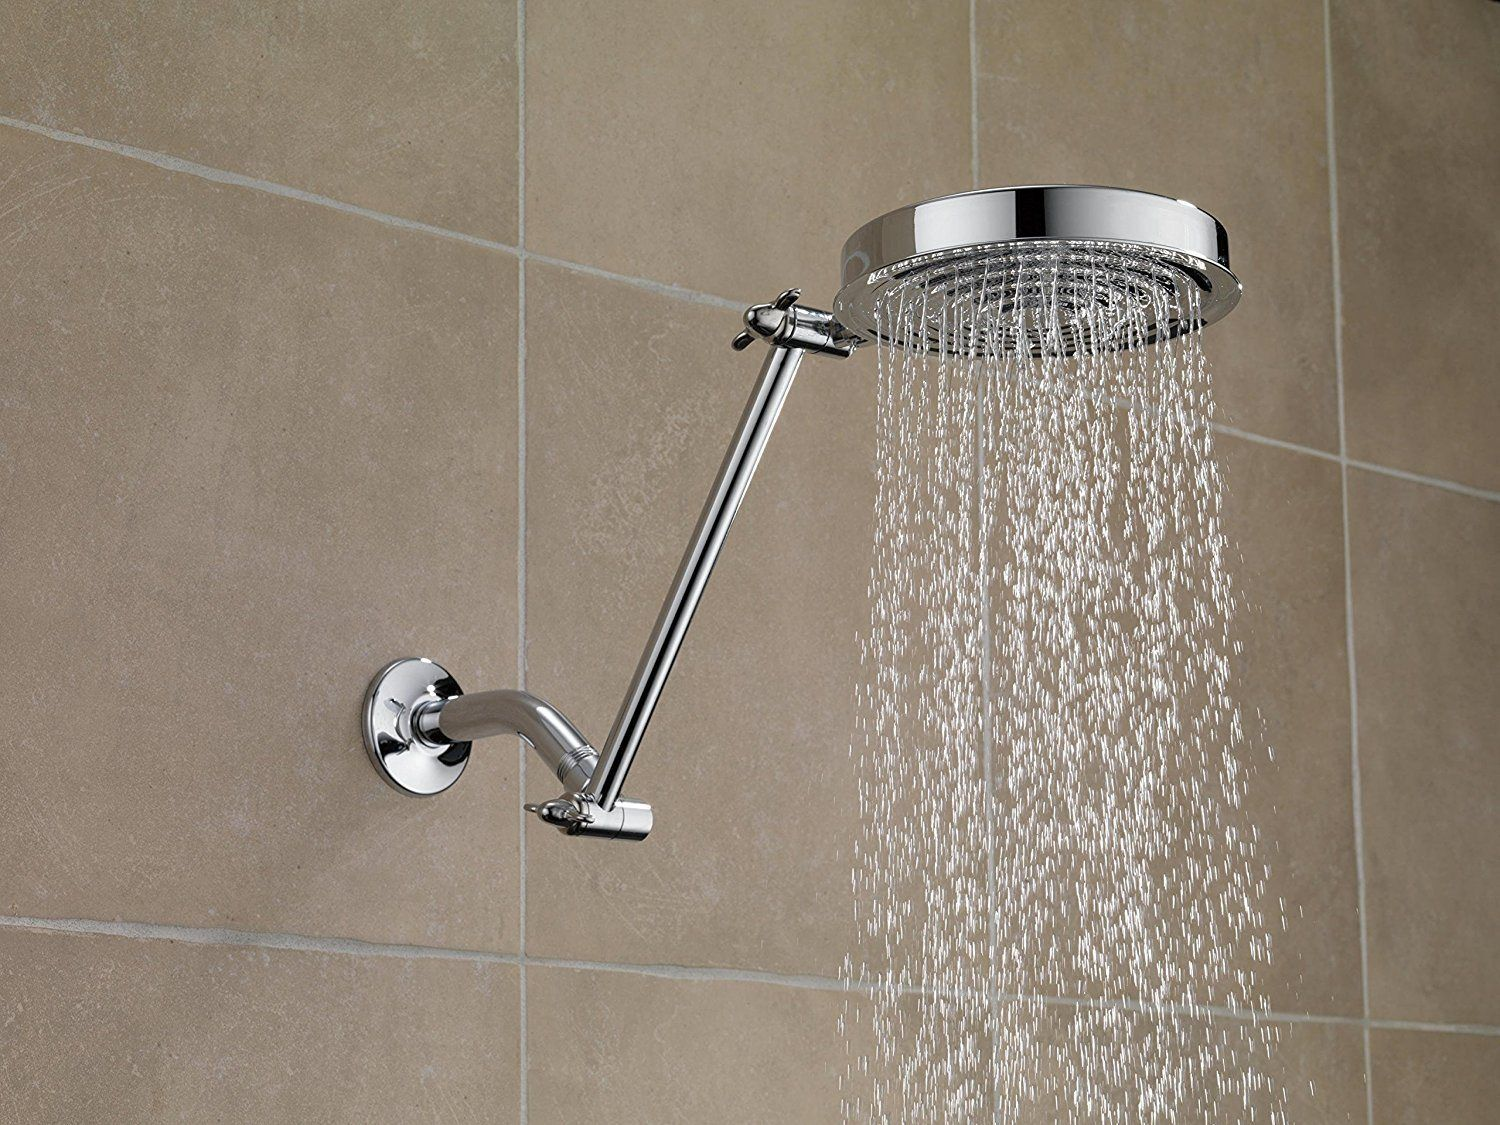 Best Shower Head Extension Arms New Tra Reviews 2019 Shower